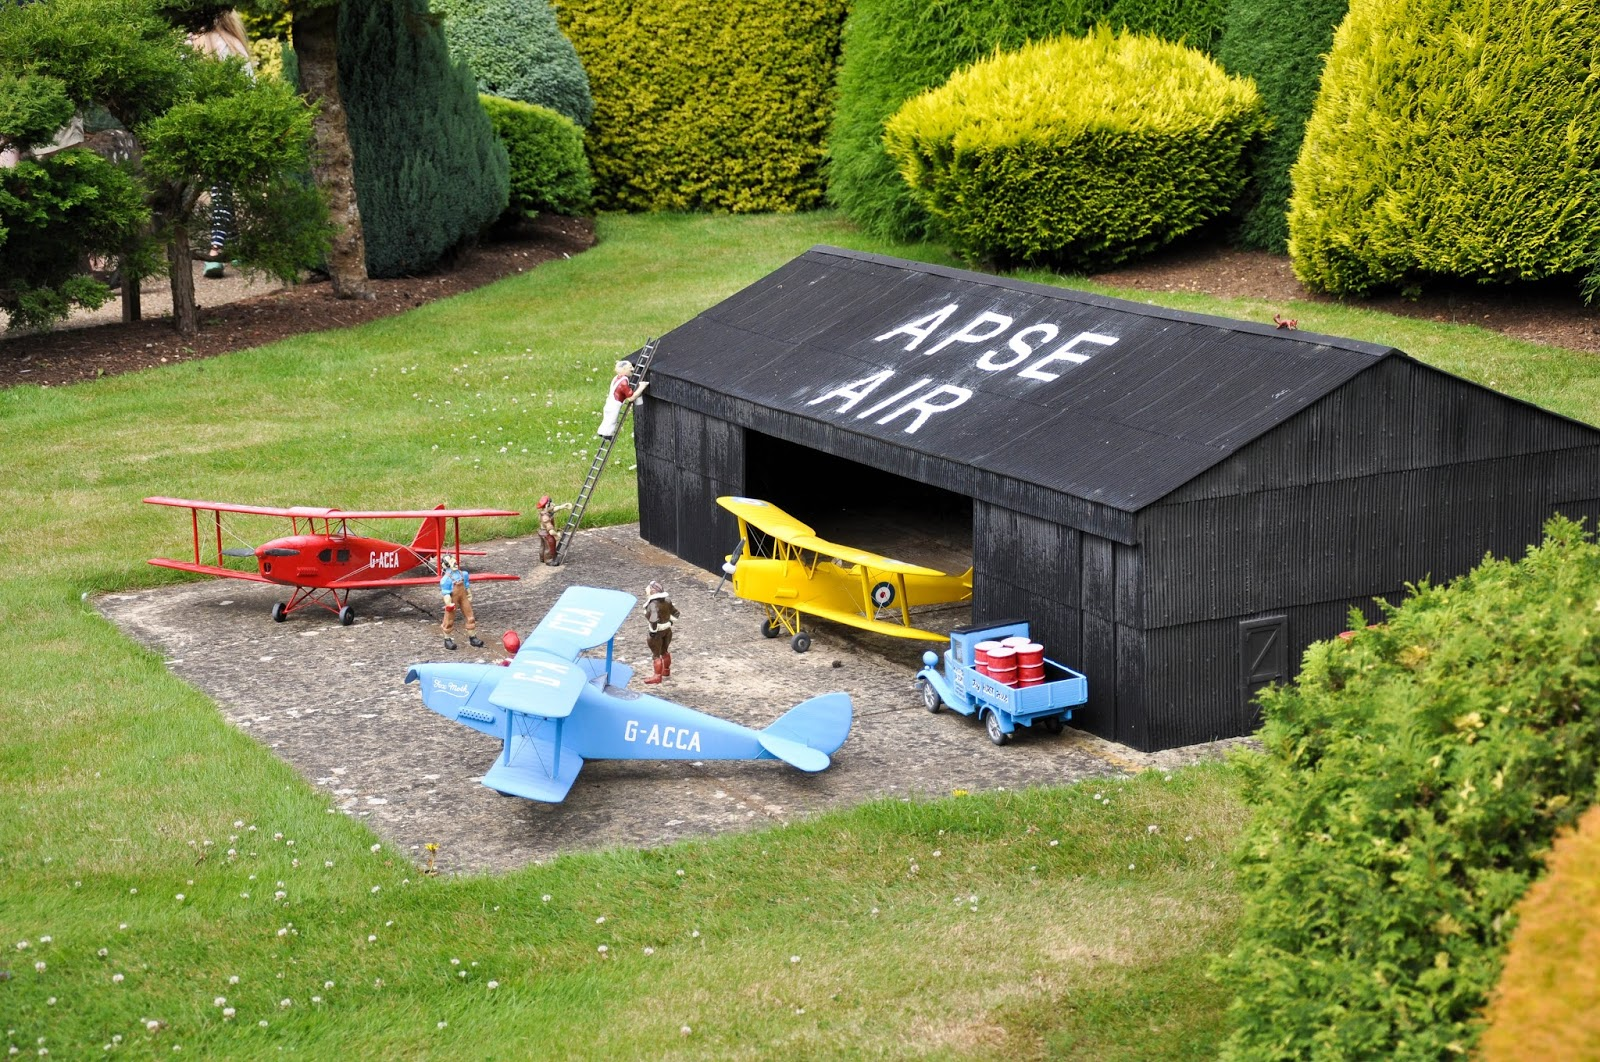 The air base, Model Village, Godshill, Isle of Wight, UK